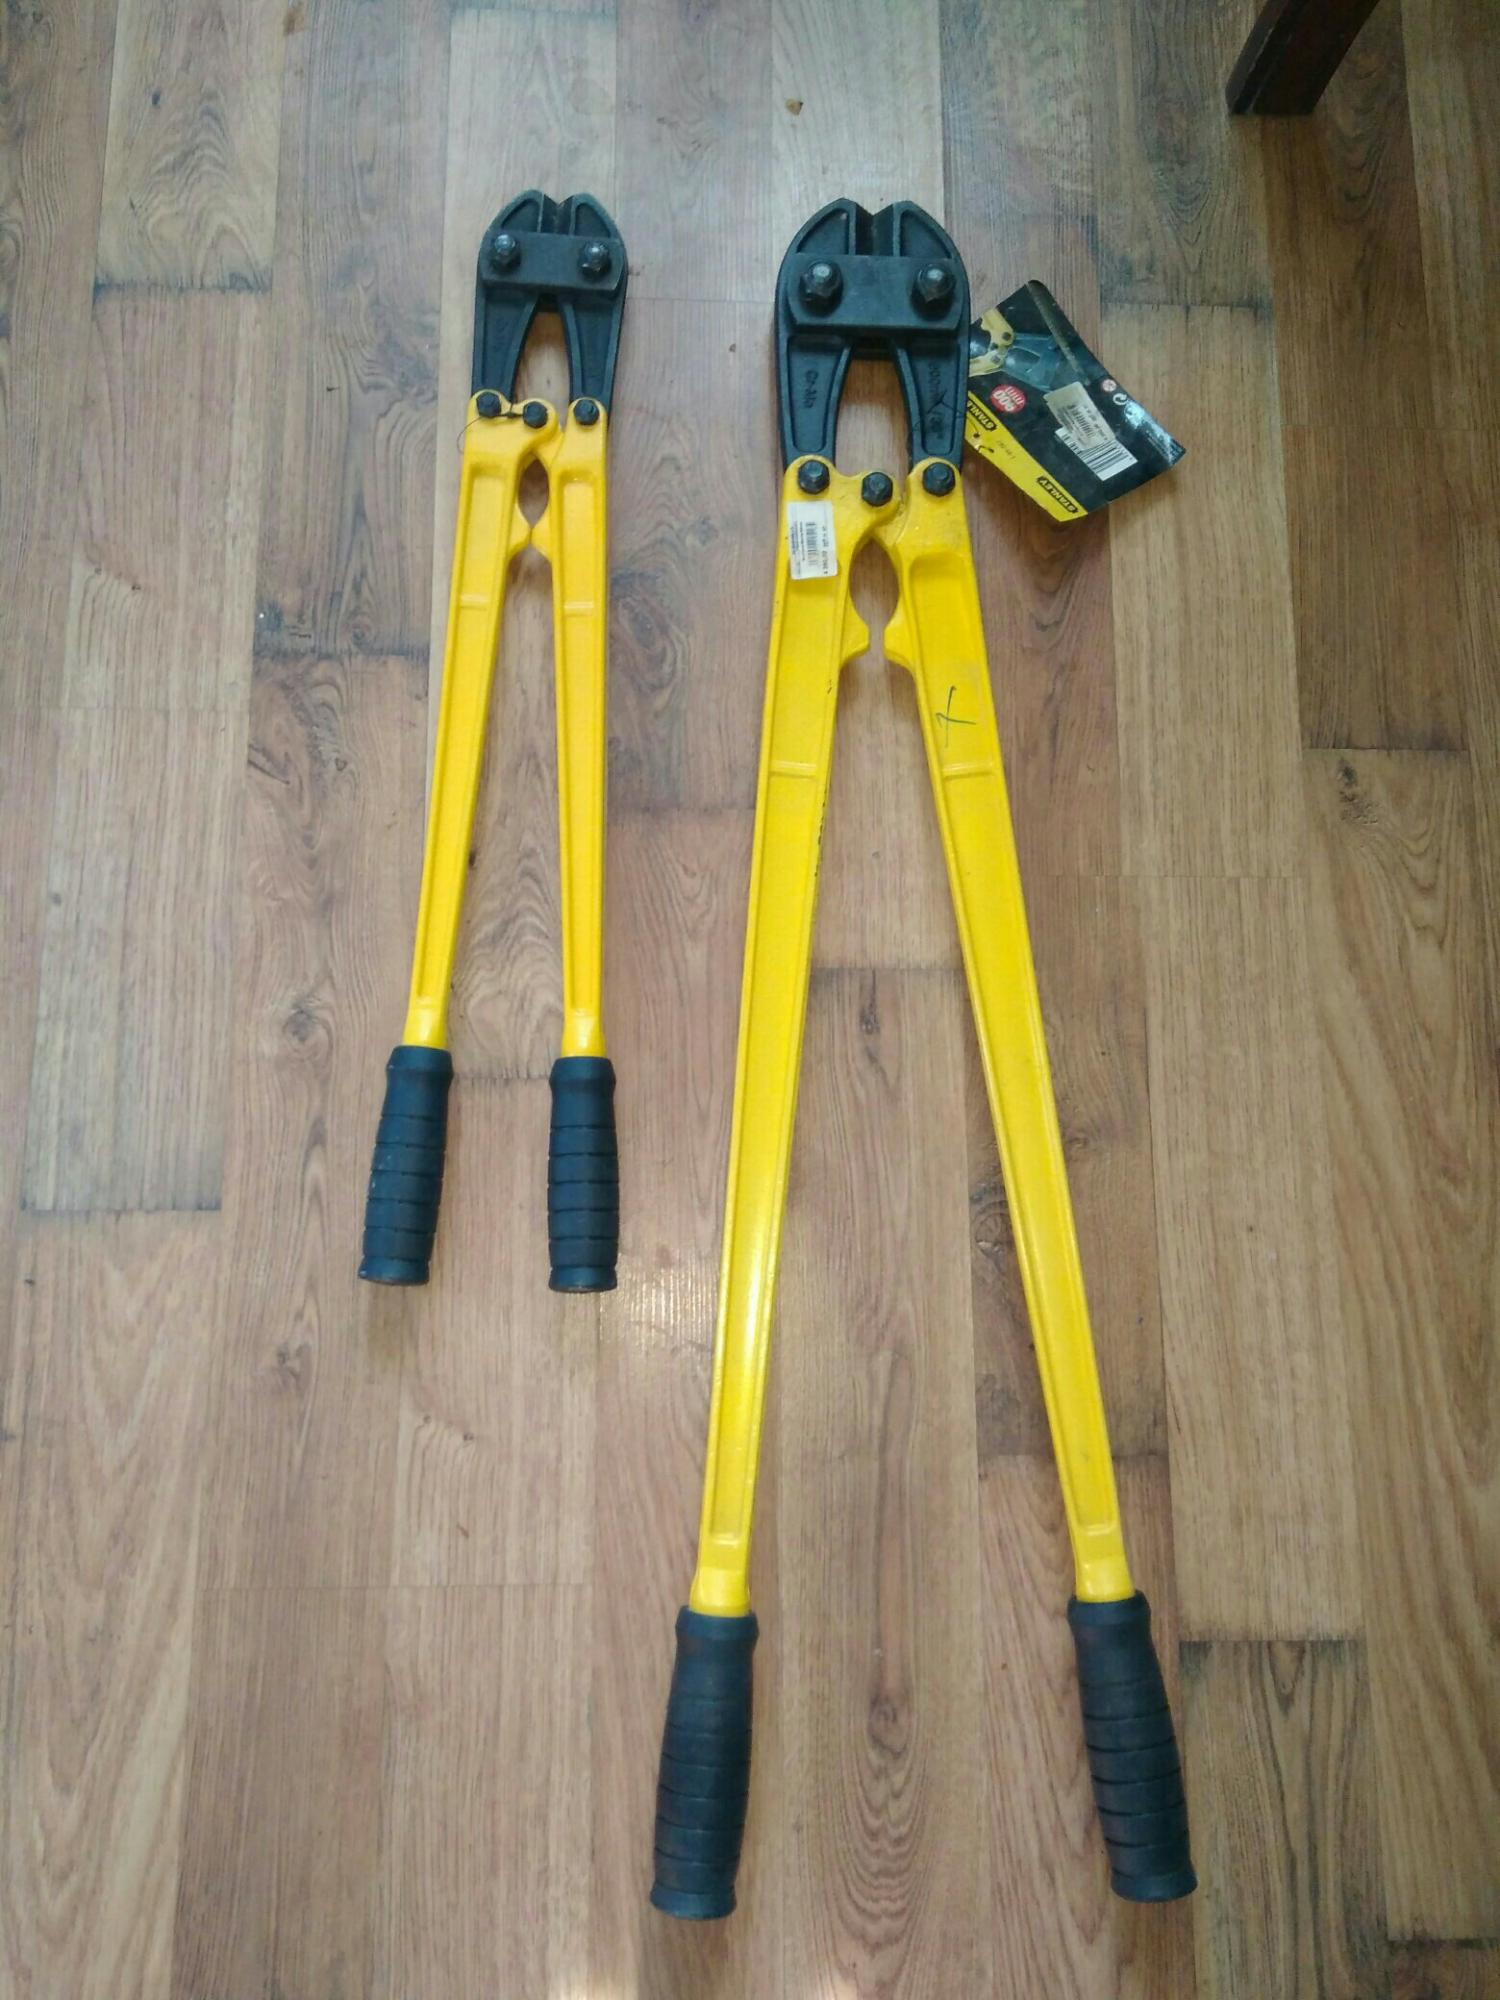 Bolt cutters 89152445590 buy 1